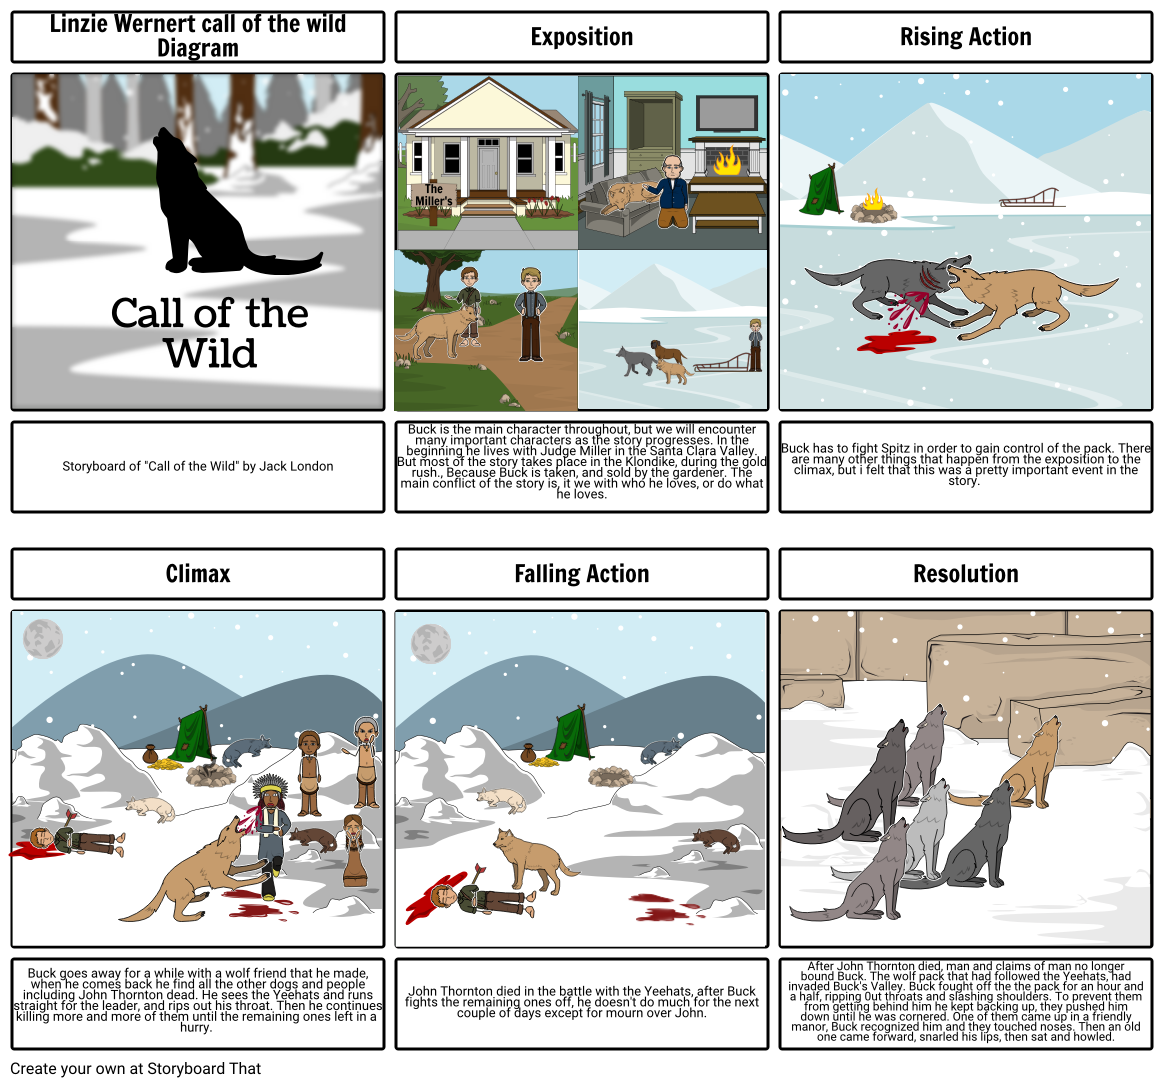 Linzie's Call of the Wild storyboard